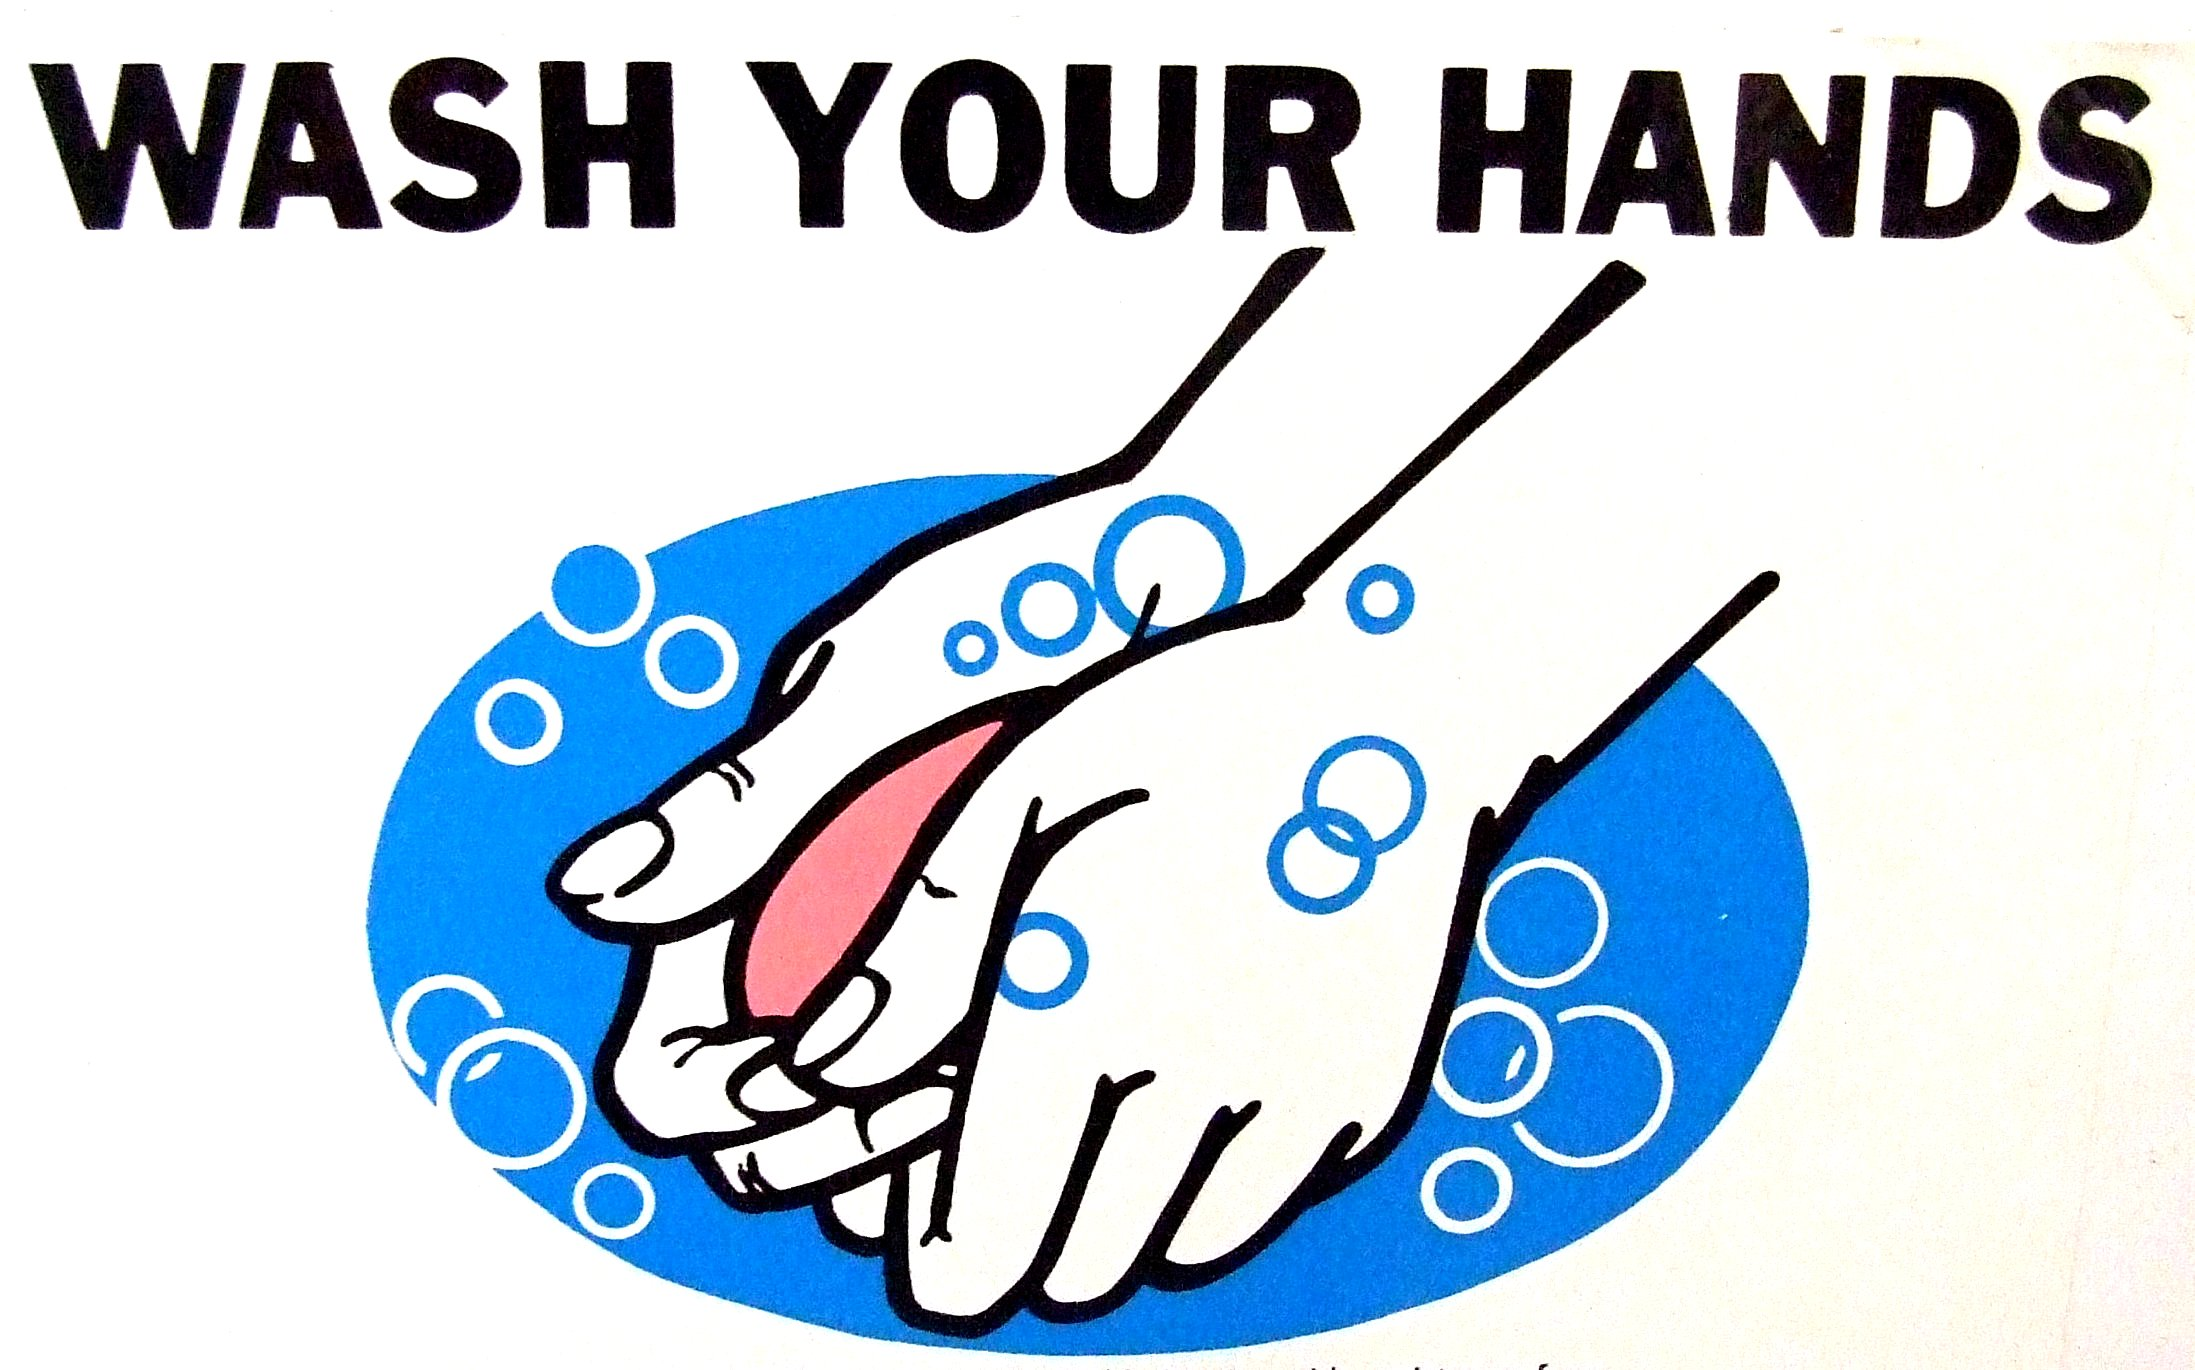 Wash Your Hands With Soap Pictures To Pin On Pinterest